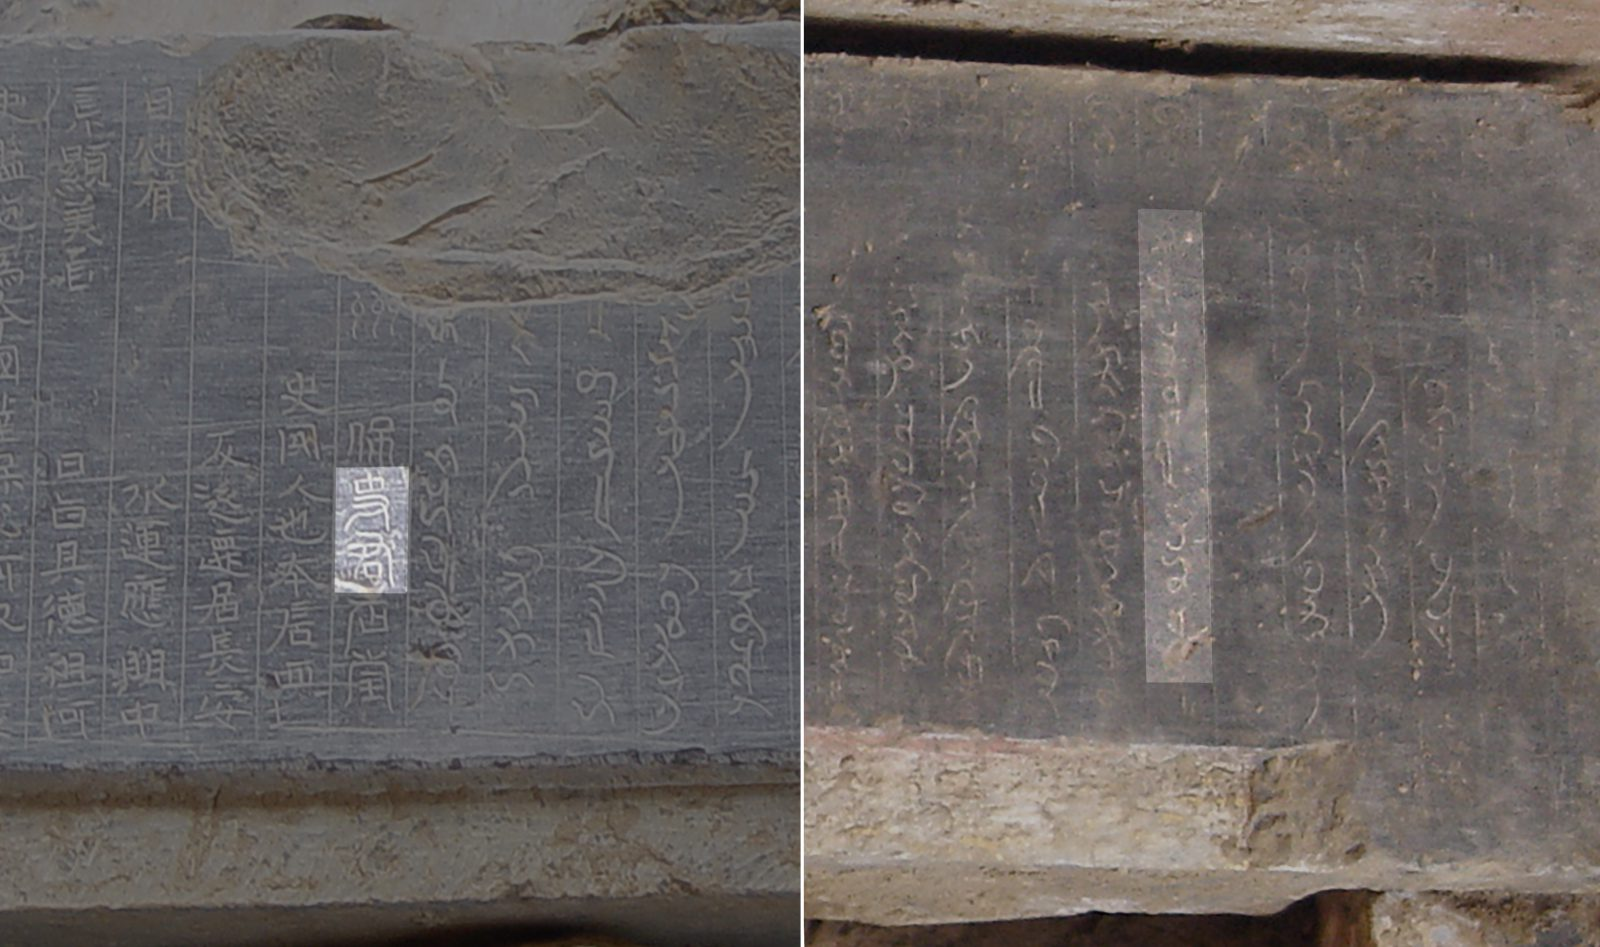 Highlight of the surname of Shi Jun on the inscription on the tomb